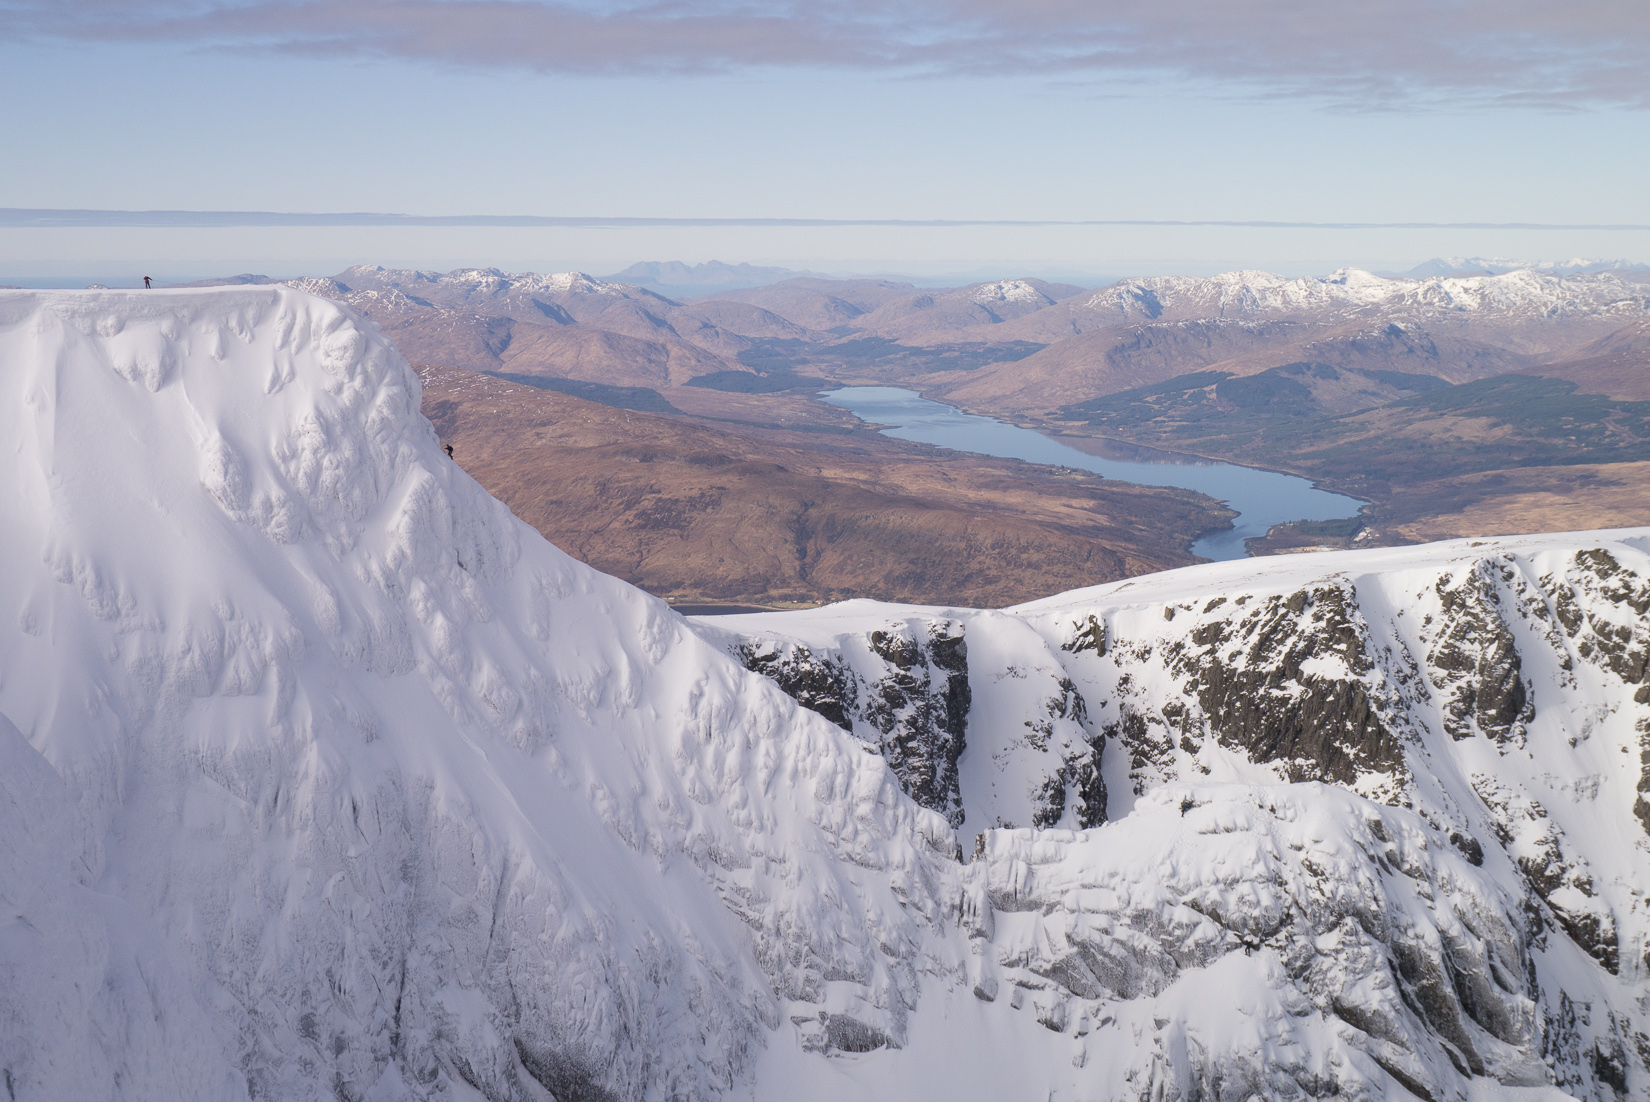 Climbers on Tower Ridge with the Cuillins in the background